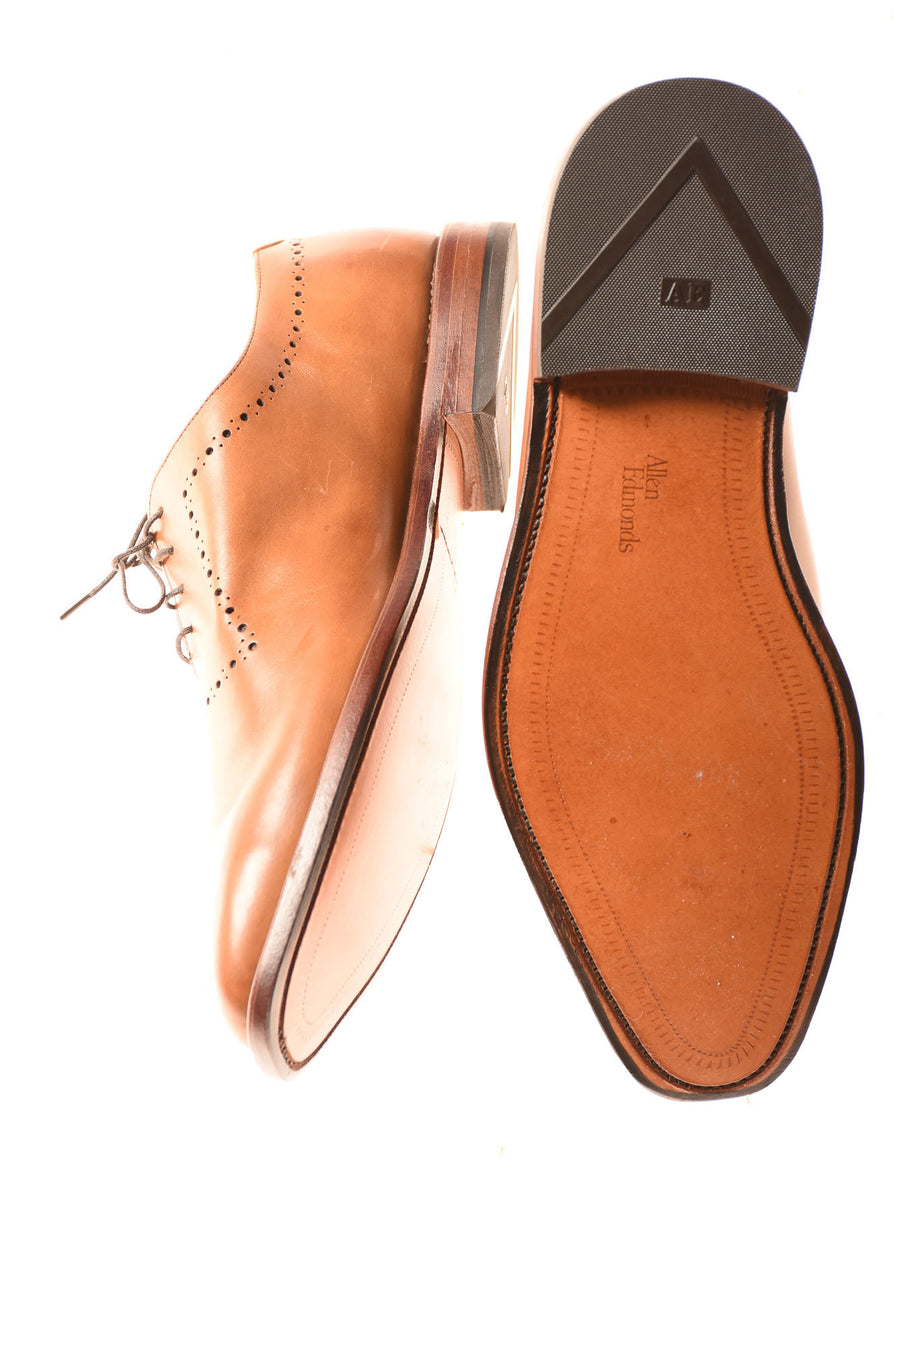 USED Allen Edmonds Men's Shoes By Allen Edmonds 11 Tan